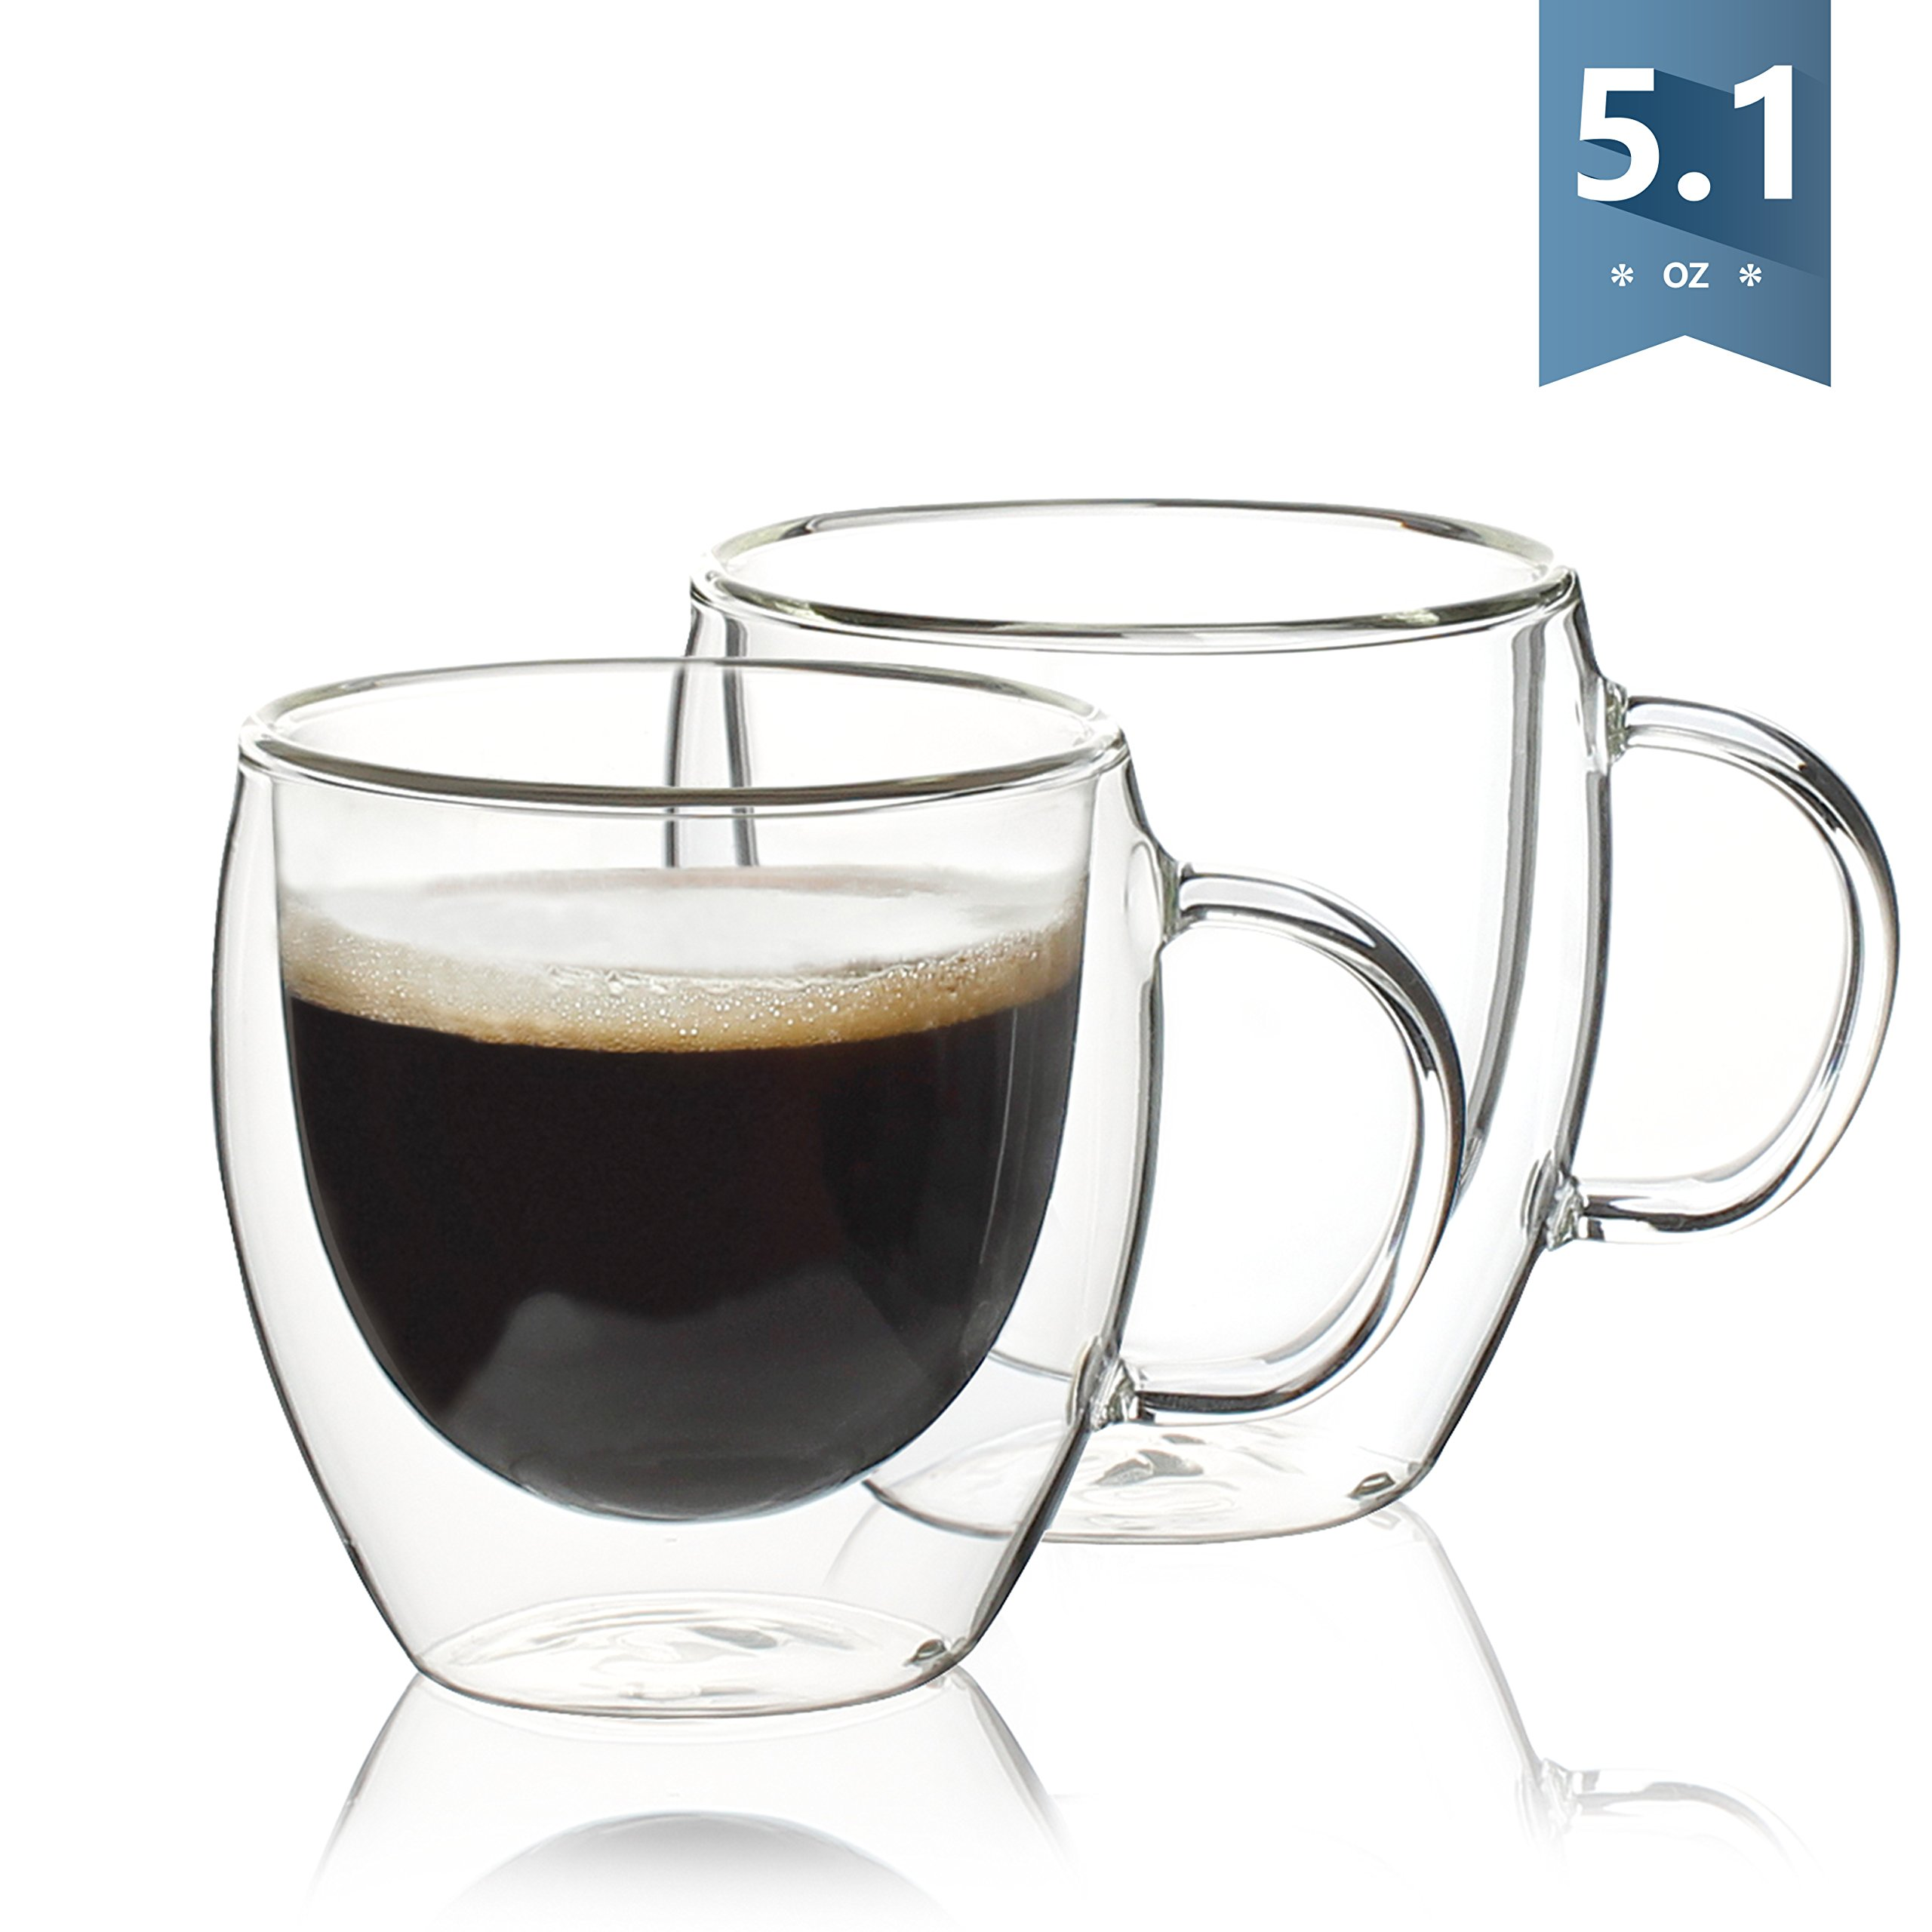 Sweese Espresso Cups - Double Wall Insulated Coffee Glasses with Handle - 5.1 Ounces Mug, Set of 2